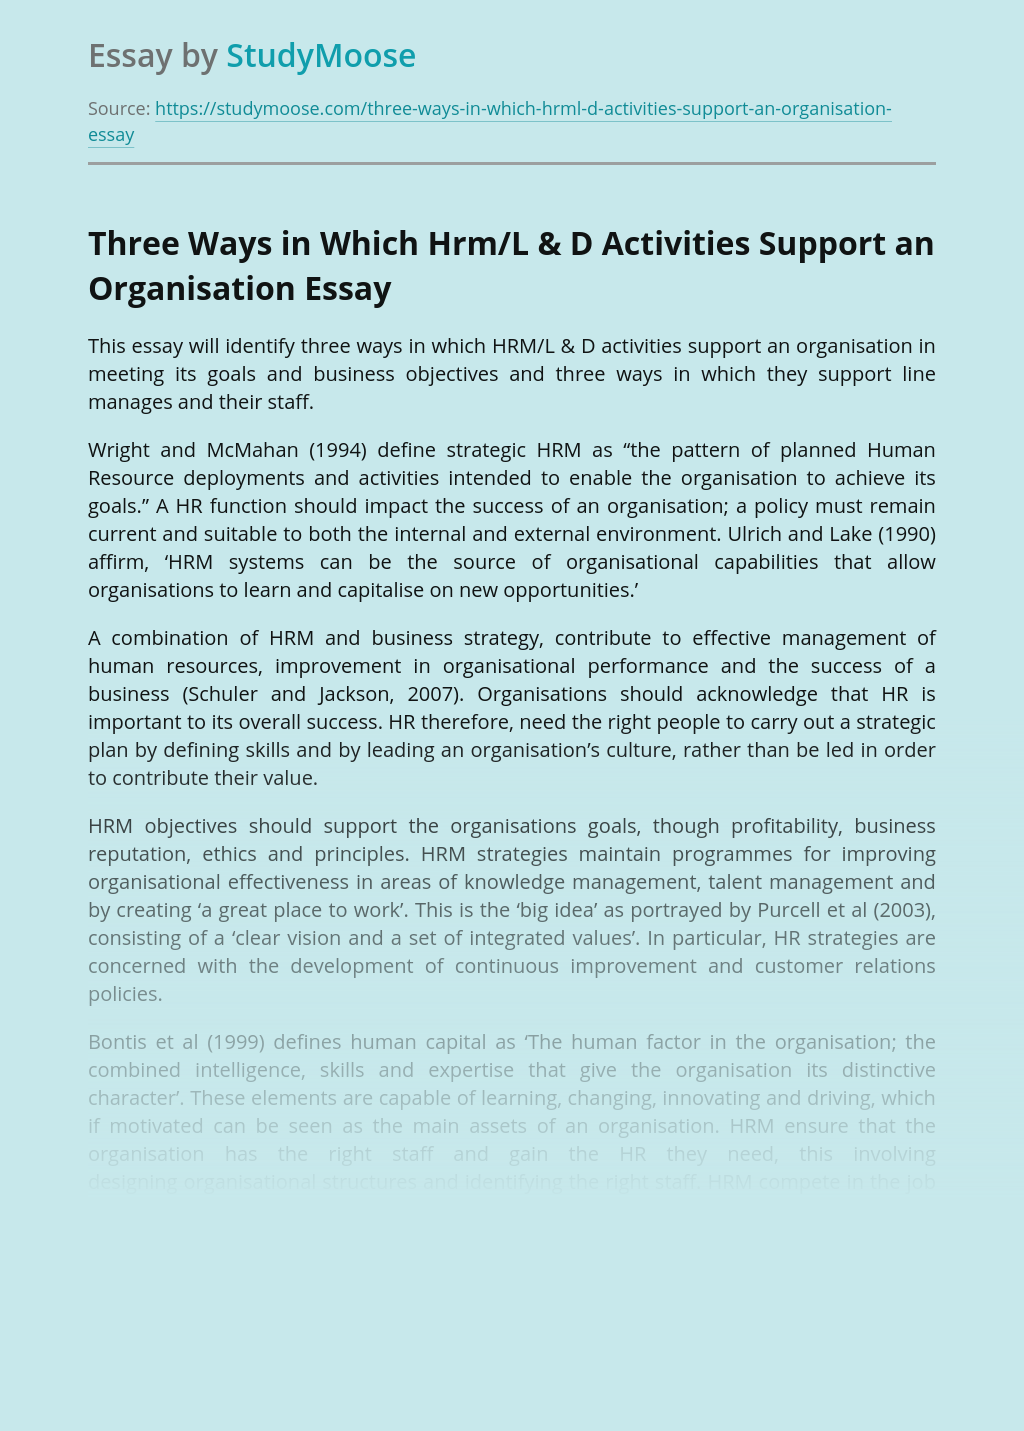 Support From Hrm/L & D Activities